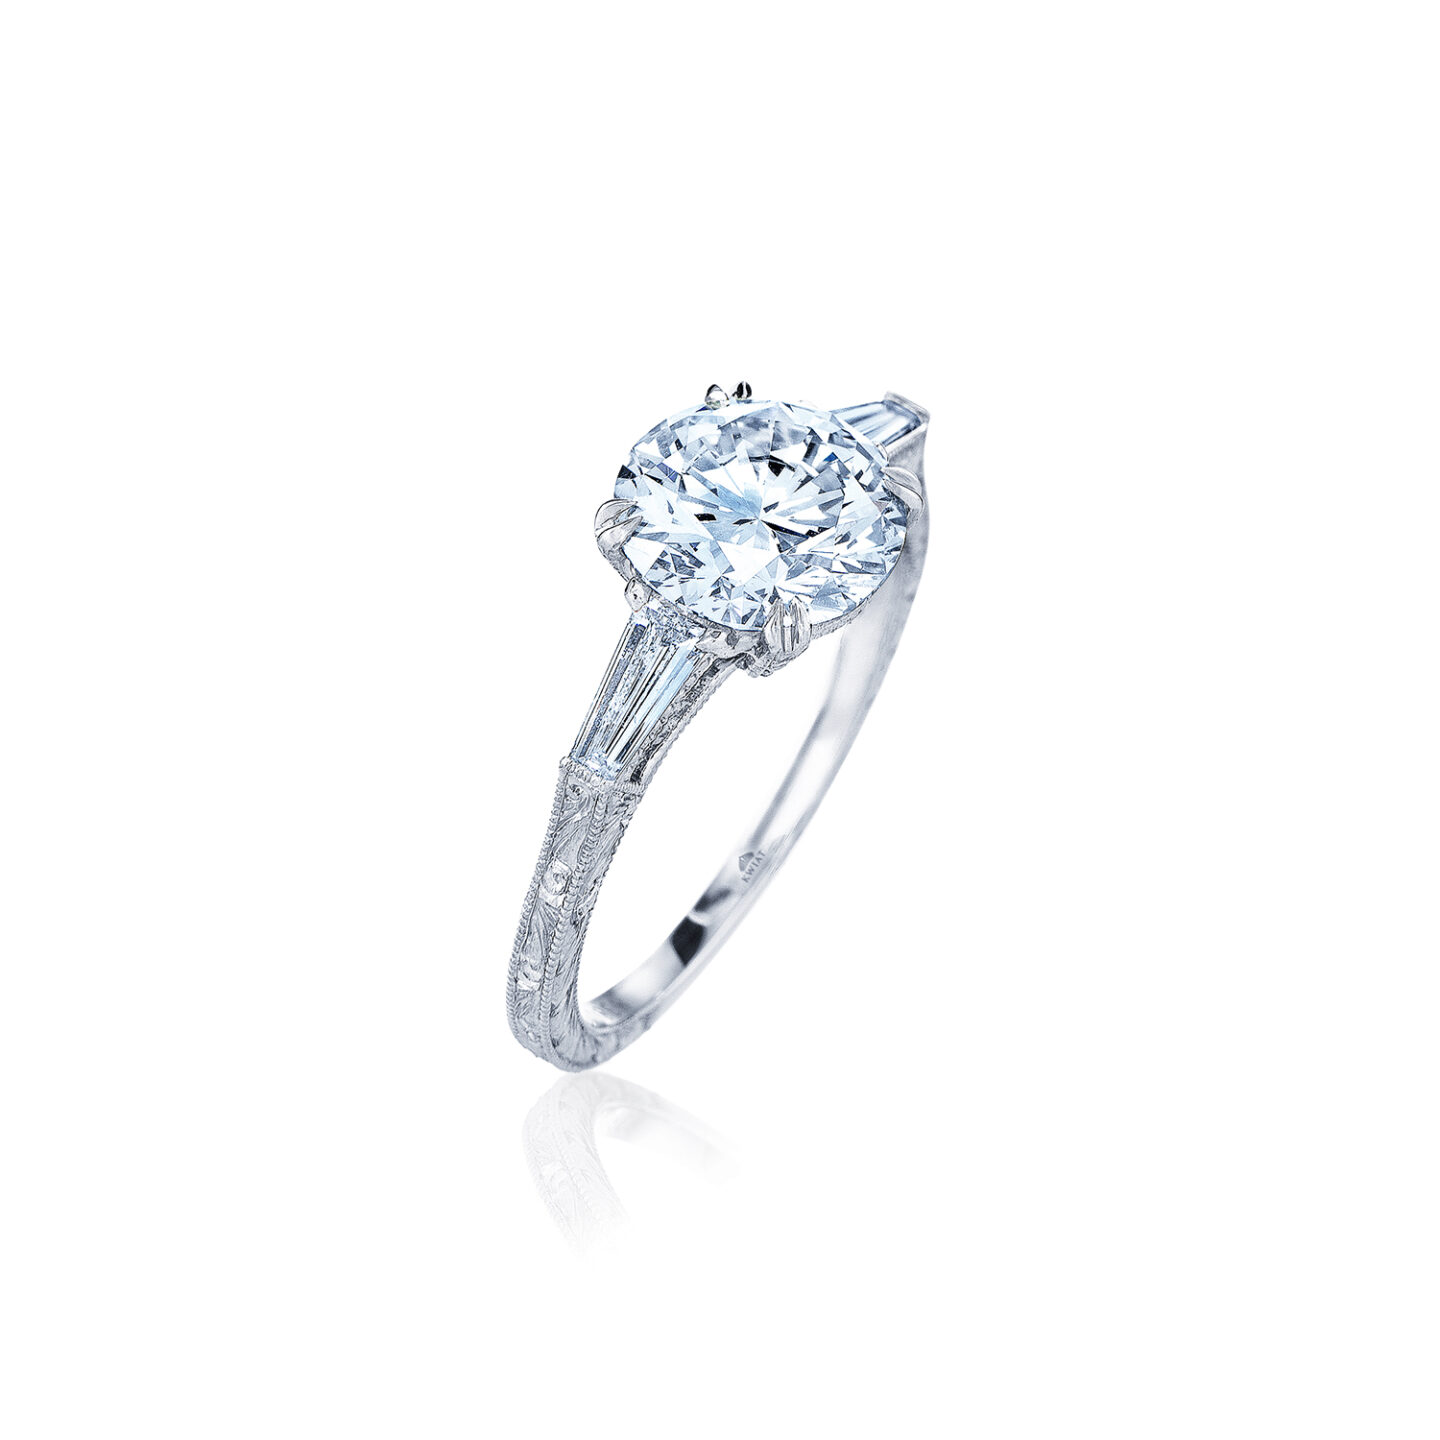 Round Brilliant Diamond Engagement Ring With Two Tapered Baguette Side Stones In A Vintage Style In